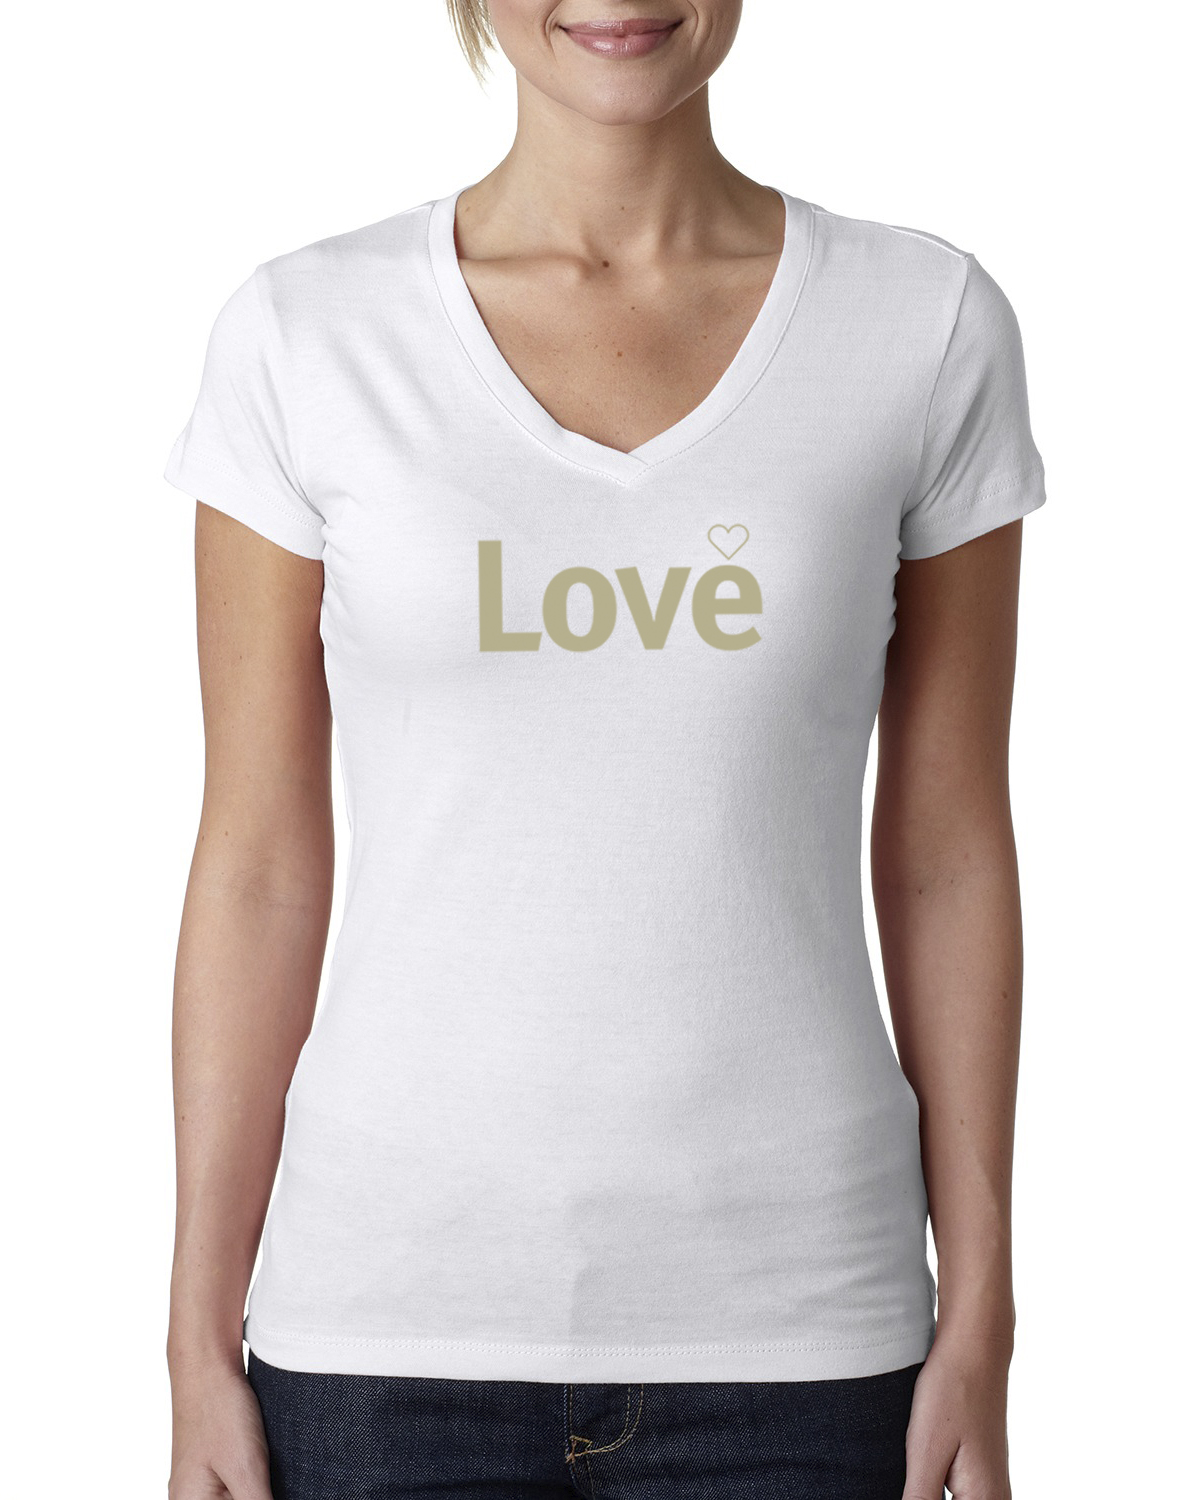 Short sleeve v-neck Love T-shirt for women (white)